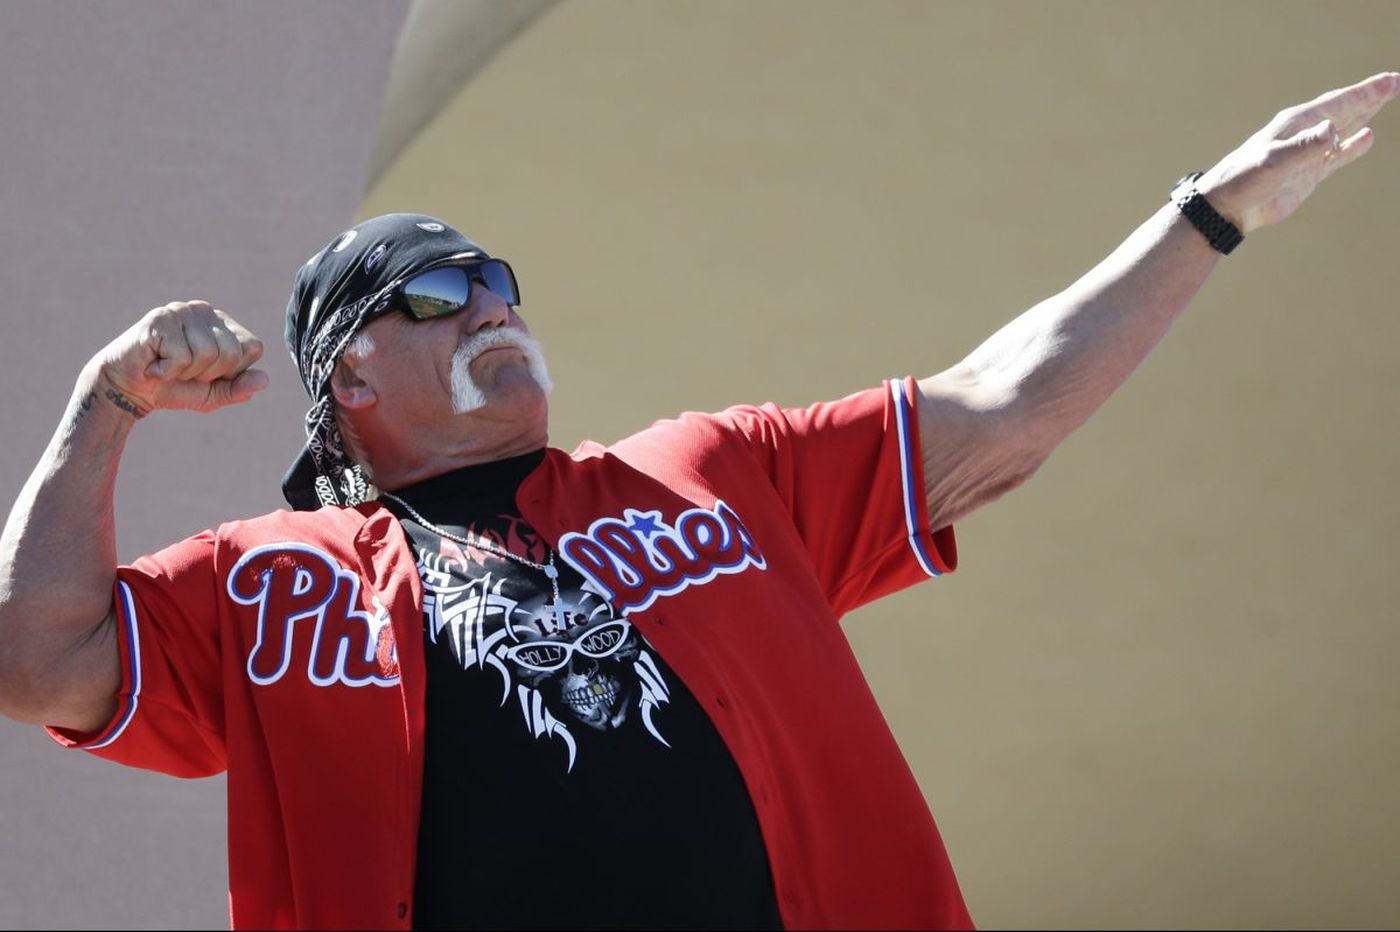 Hulk Hogan says he would beat Sylvester Stallone in a fight